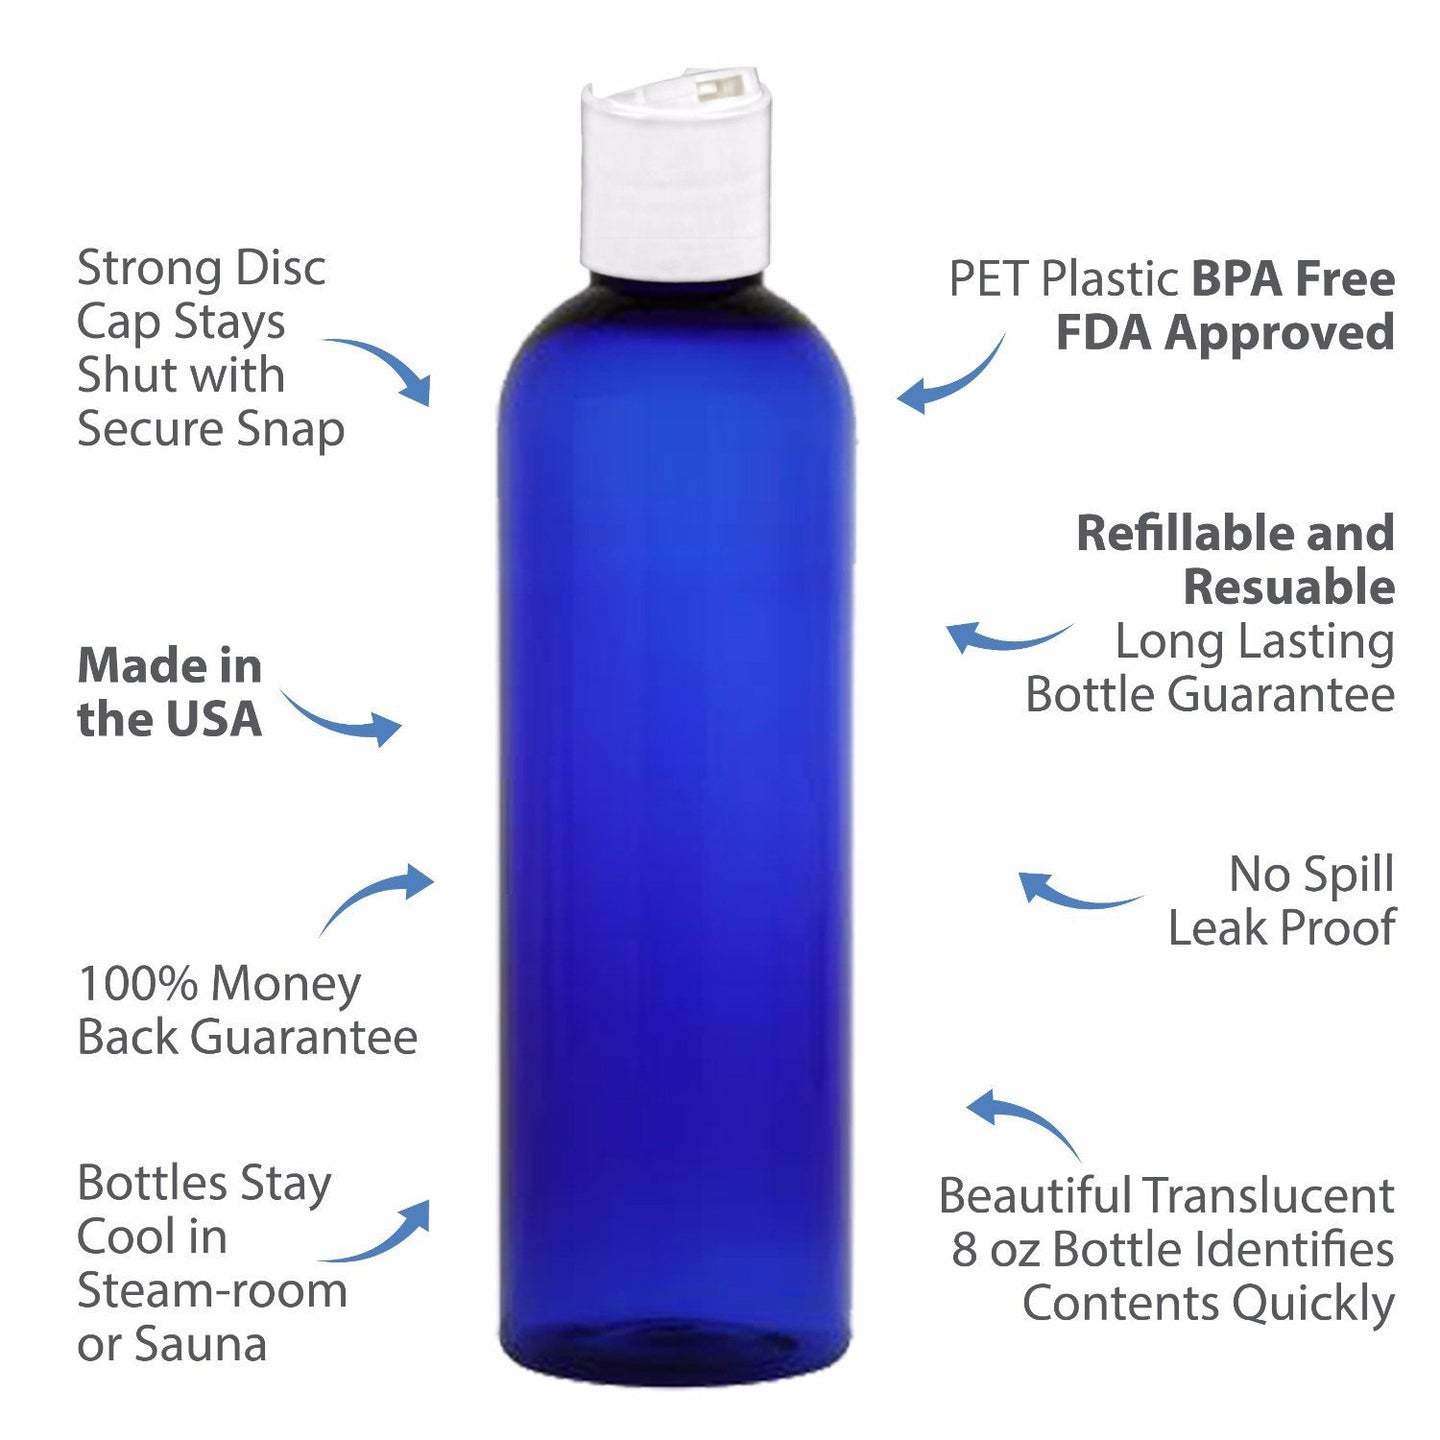 MoYo Natural Labs 4 oz Travel Bottles, Empty Travel Containers with Disc Caps, BPA Free PET Plastic Squeezable Toiletry/Cosmetic Bottles (Neck 24-410) (Pack of 50, Blue)